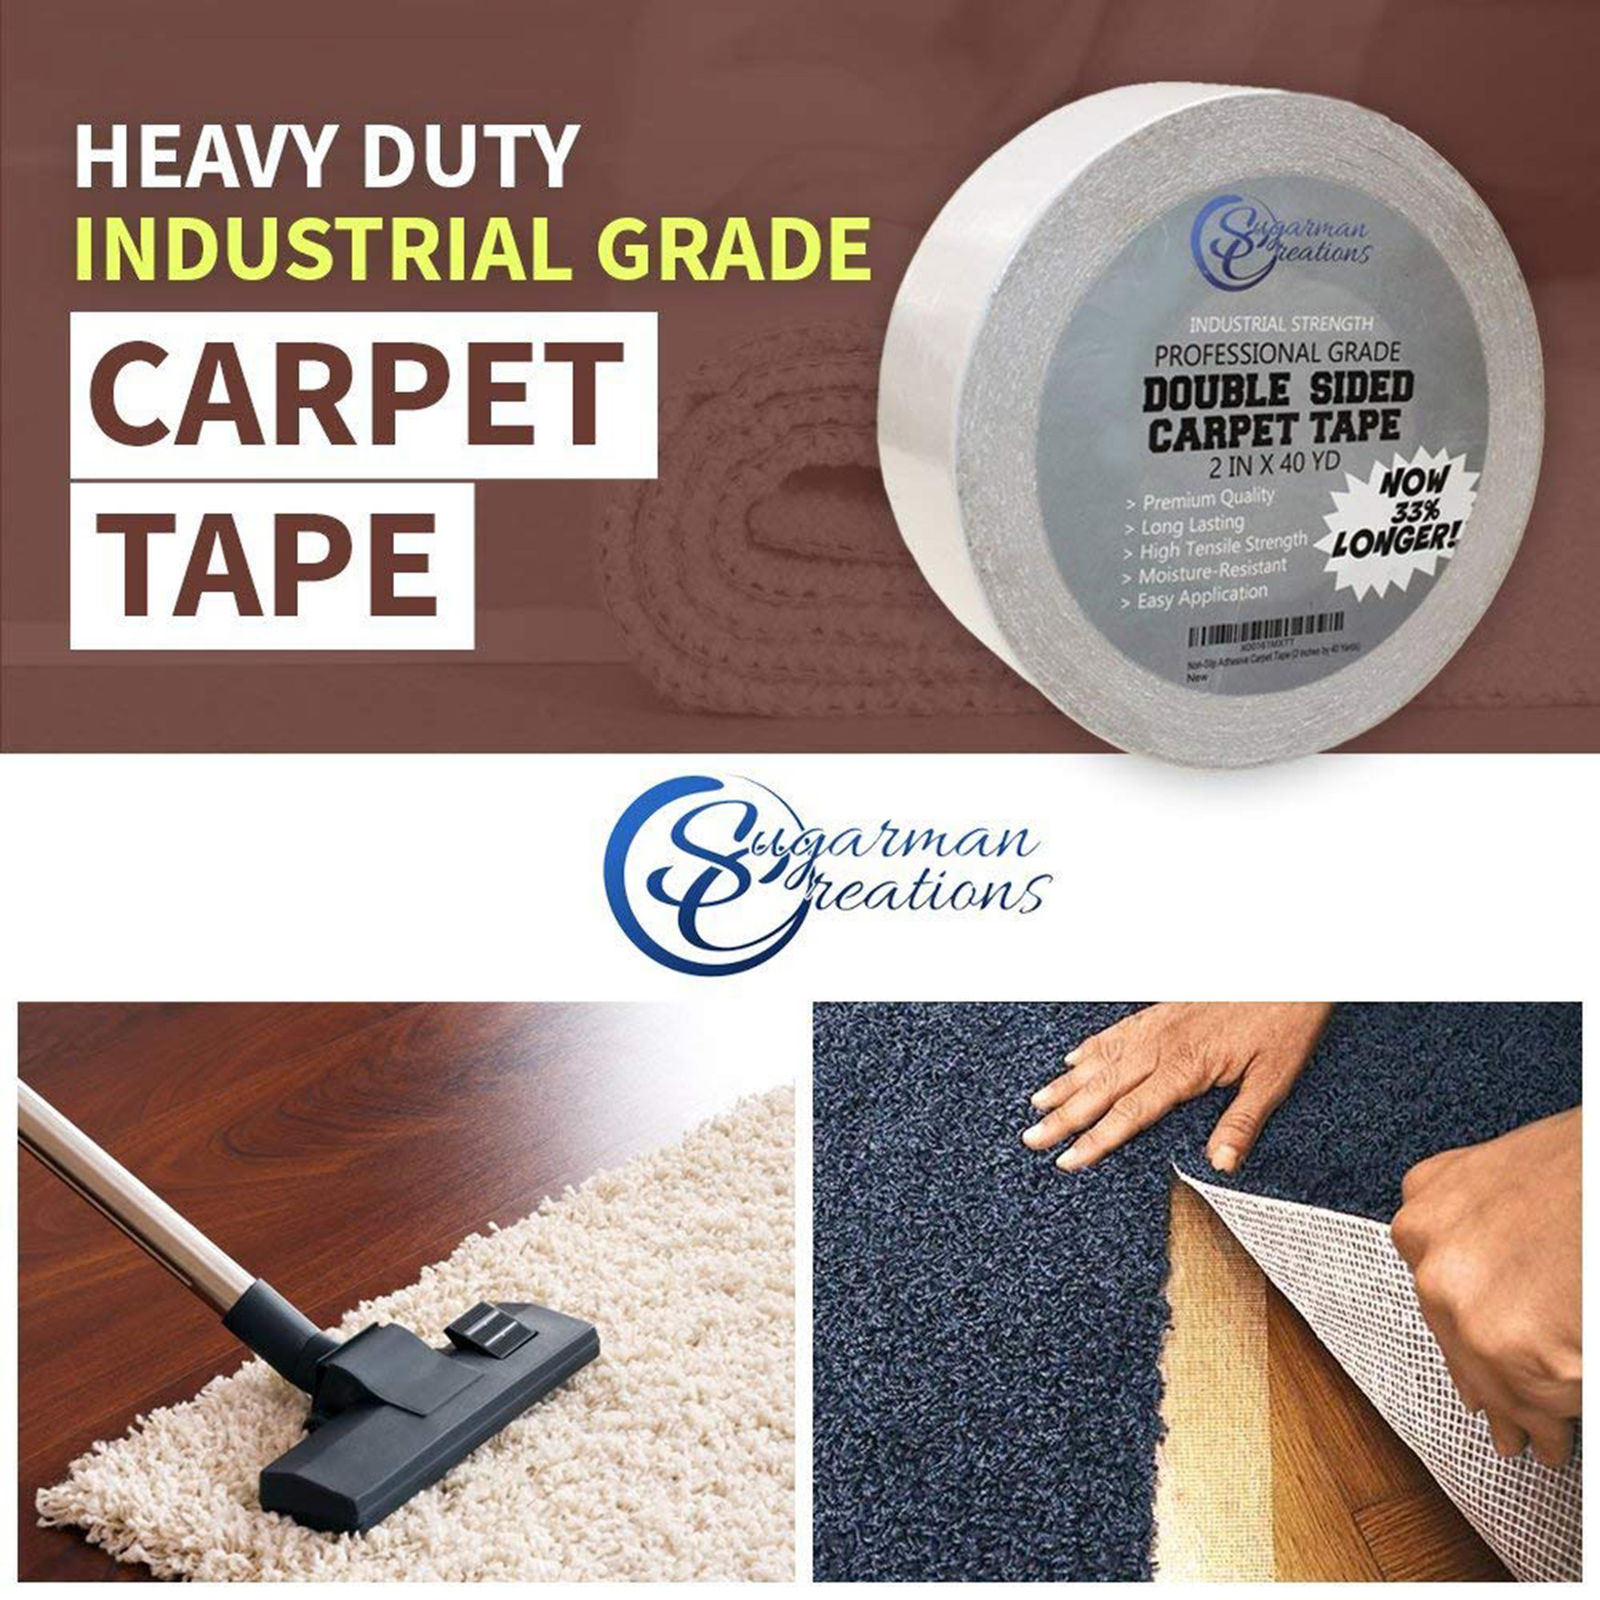 Sugarman Creations Strongest Double Sided Carpet Tape 4 In